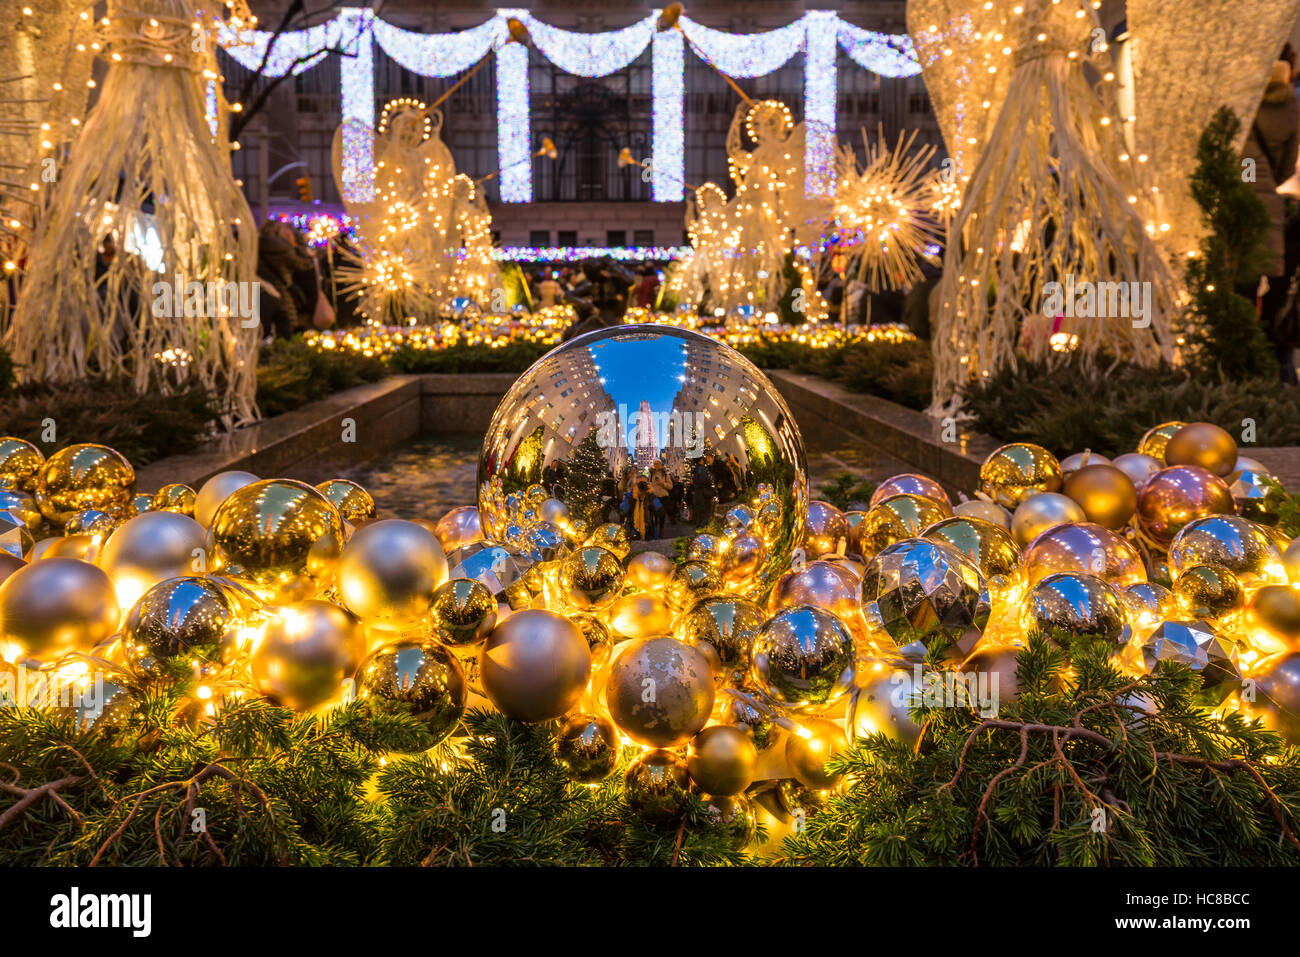 Rockefeller Center Christmas season decorations. Midtown Manhattan, New York City - Stock Image